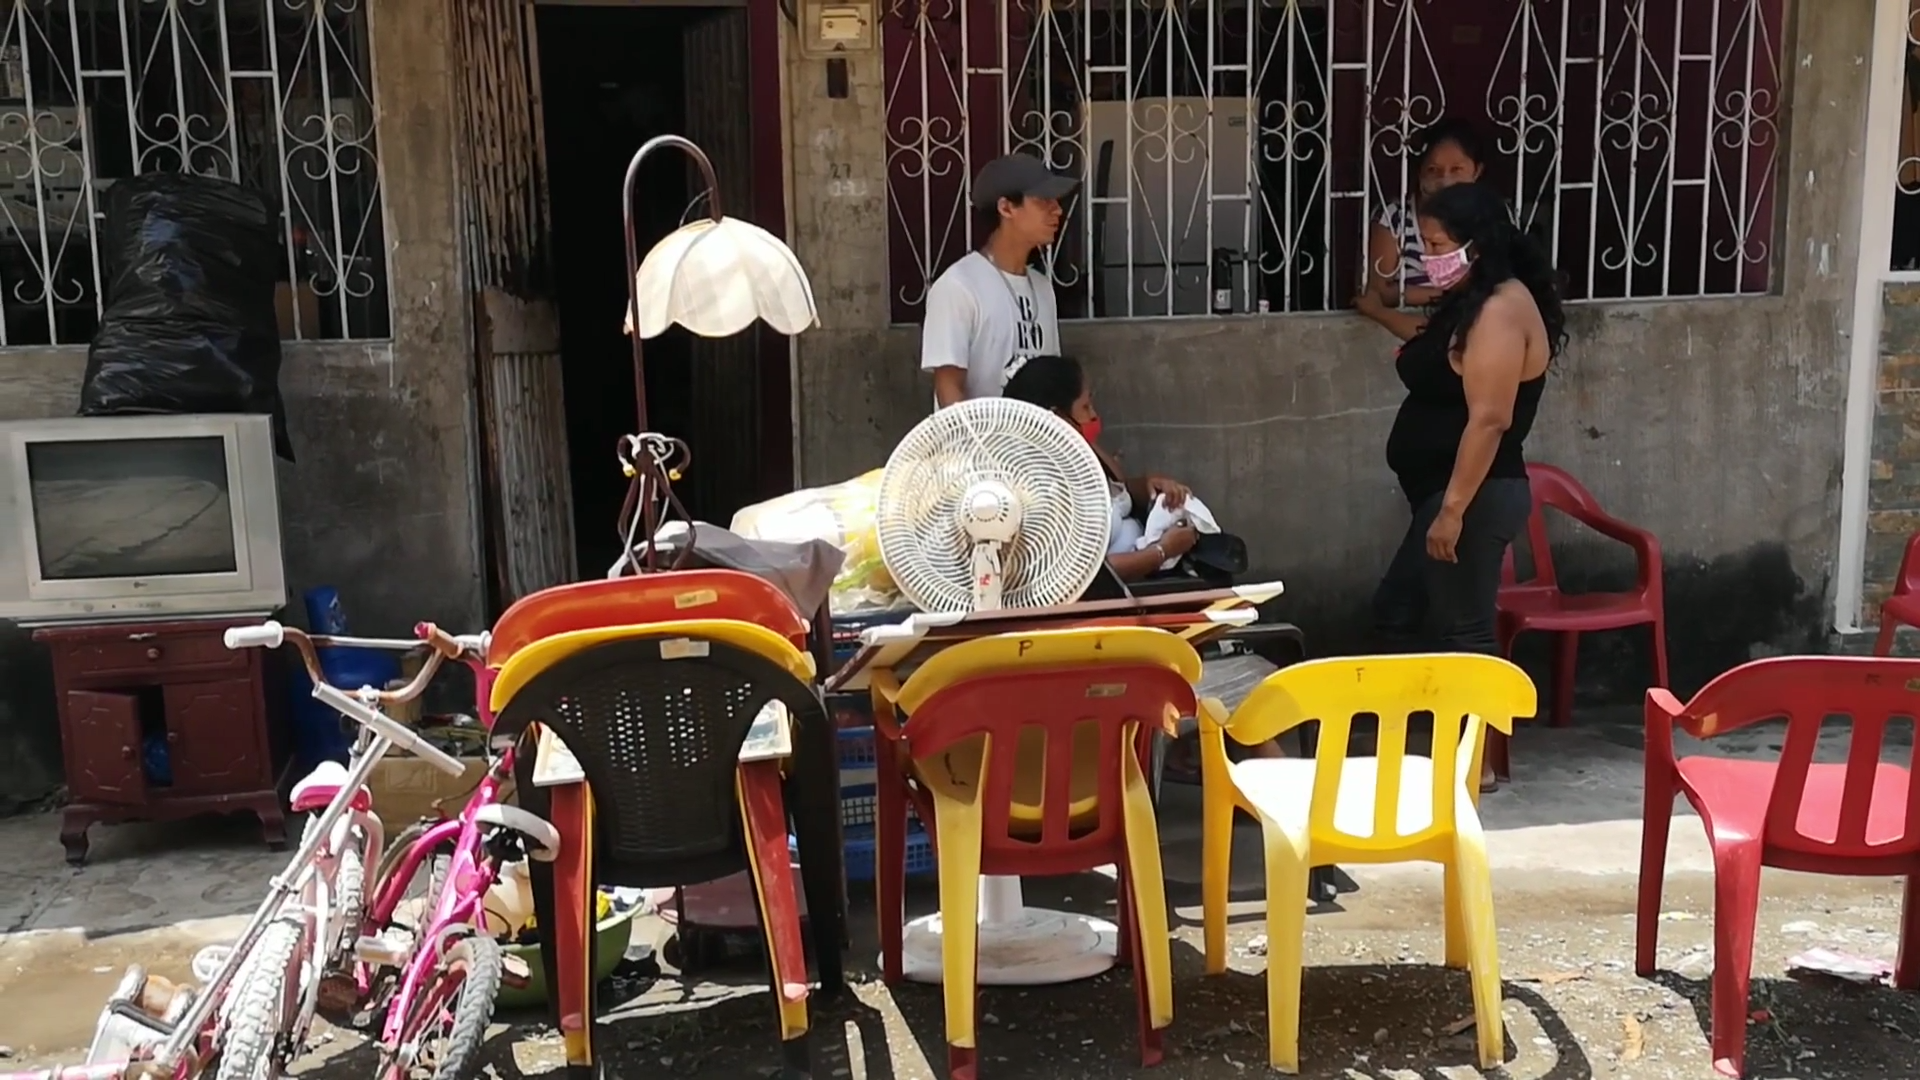 Bodies left in streets of Guayaquil as Ecuador struggles with coronavirus - channel 4